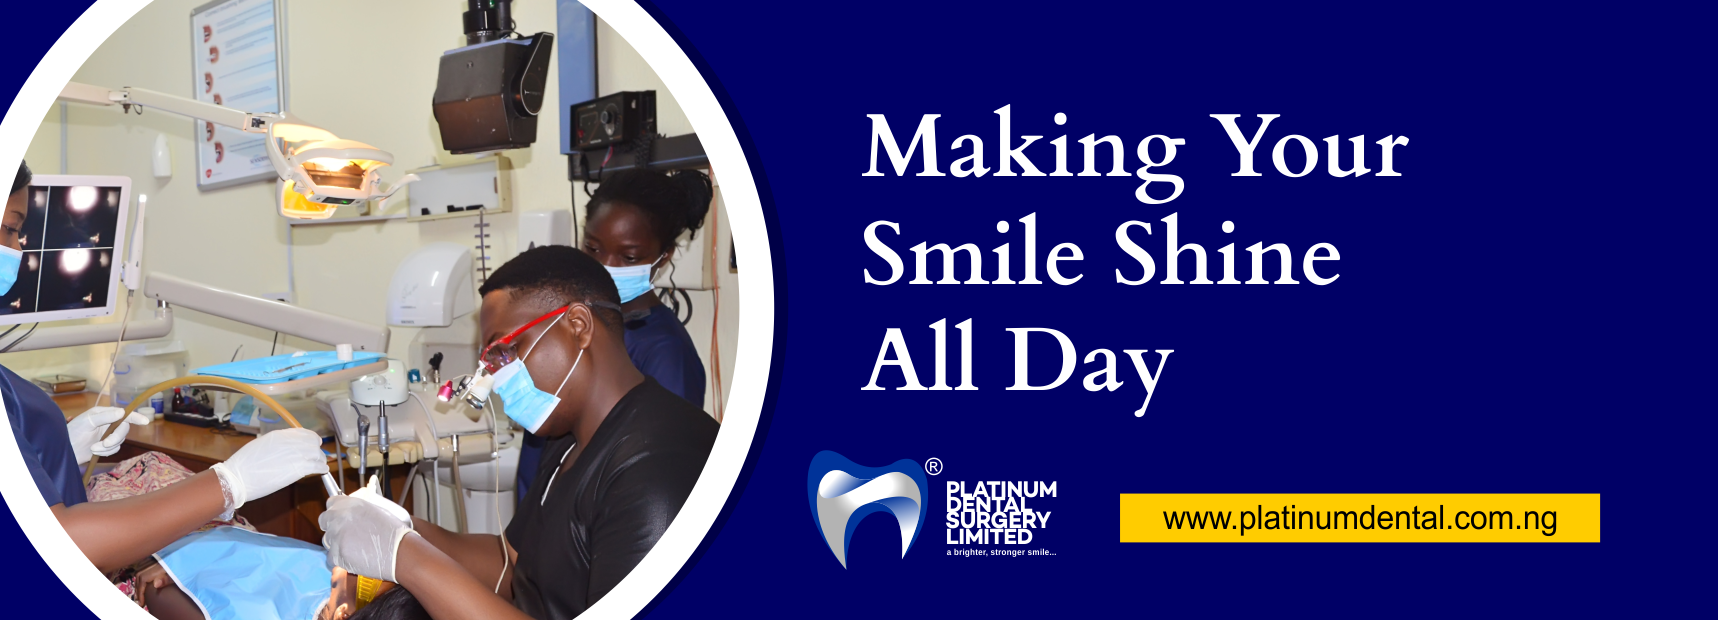 Making Your Smile Shine All Day Platinum Dental Surgery